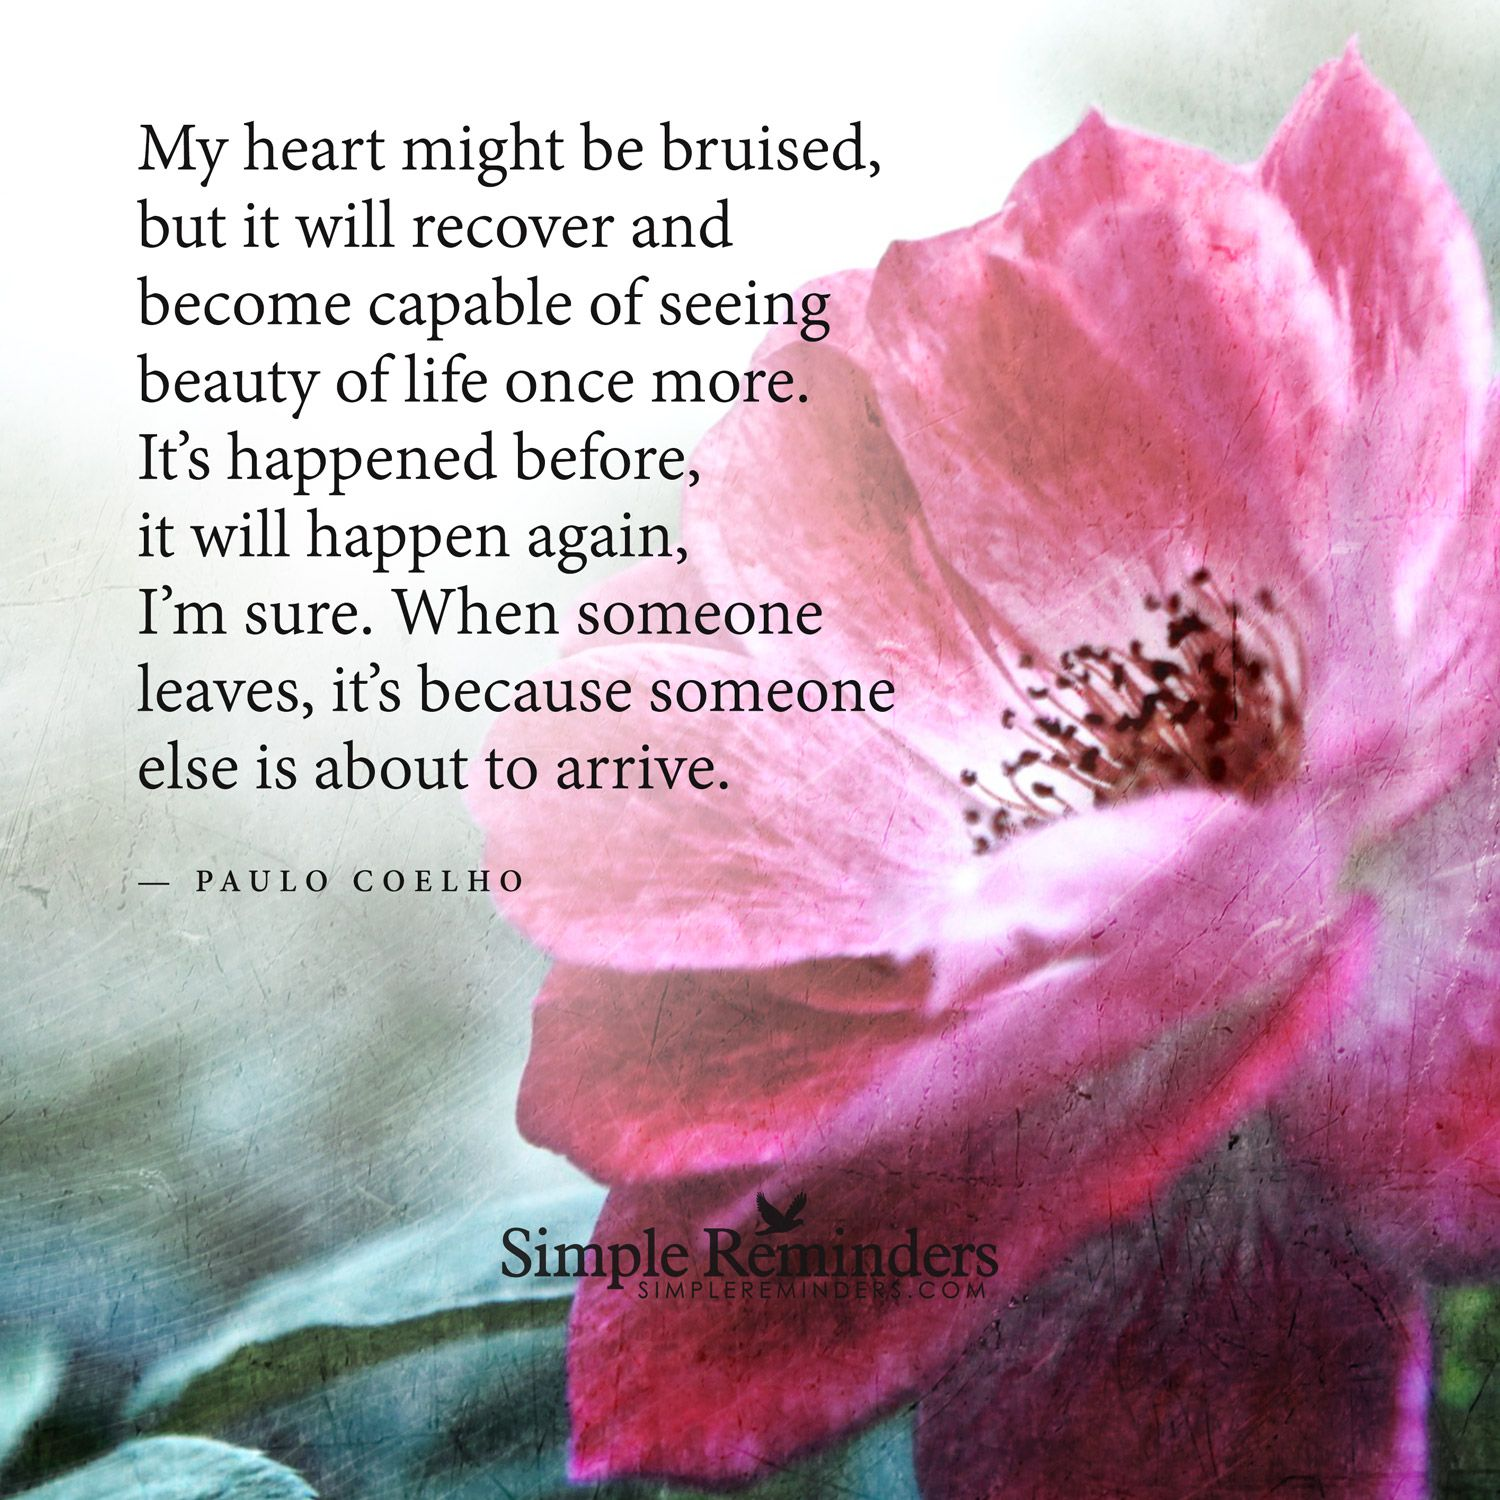 My heart might be bruised but it will recover and become capable of my heart might be bruised but it will recover and become capable of seeing beauty izmirmasajfo